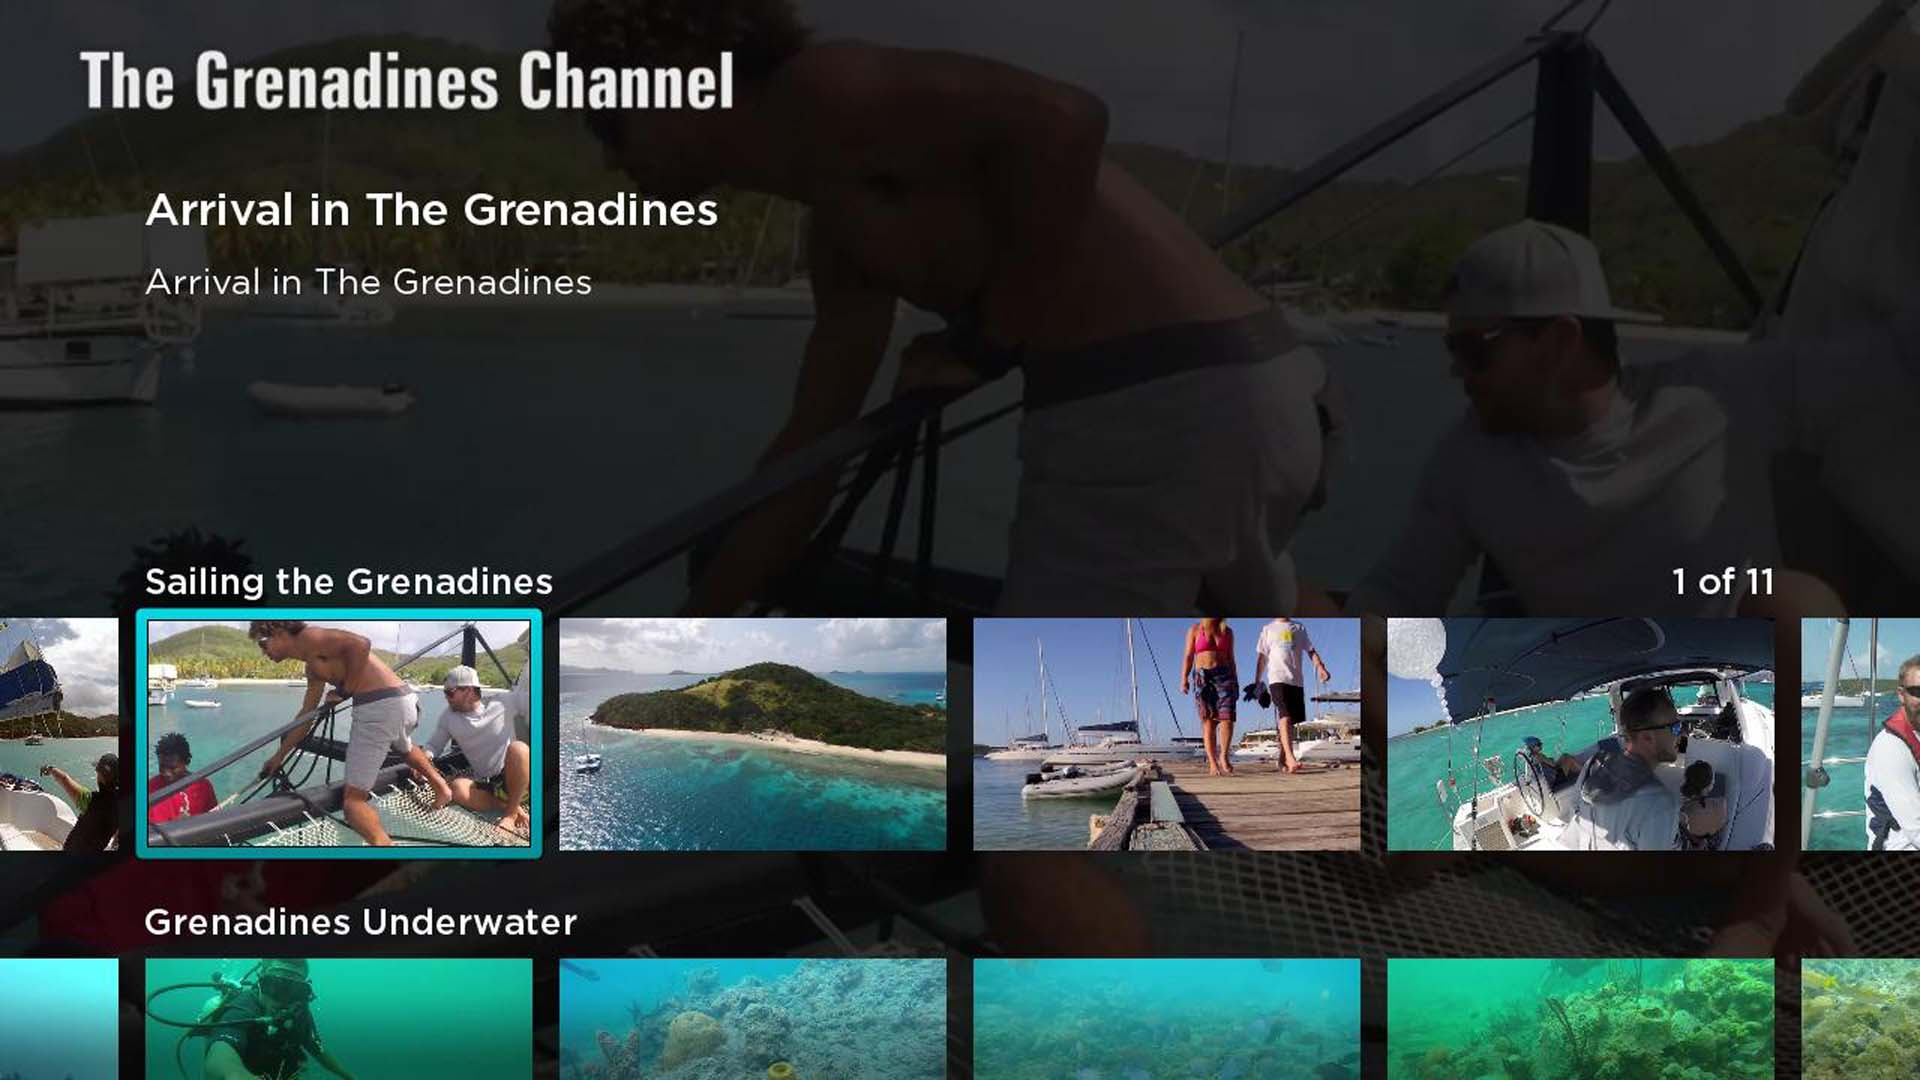 The Grenadines Channel Screenshot 001